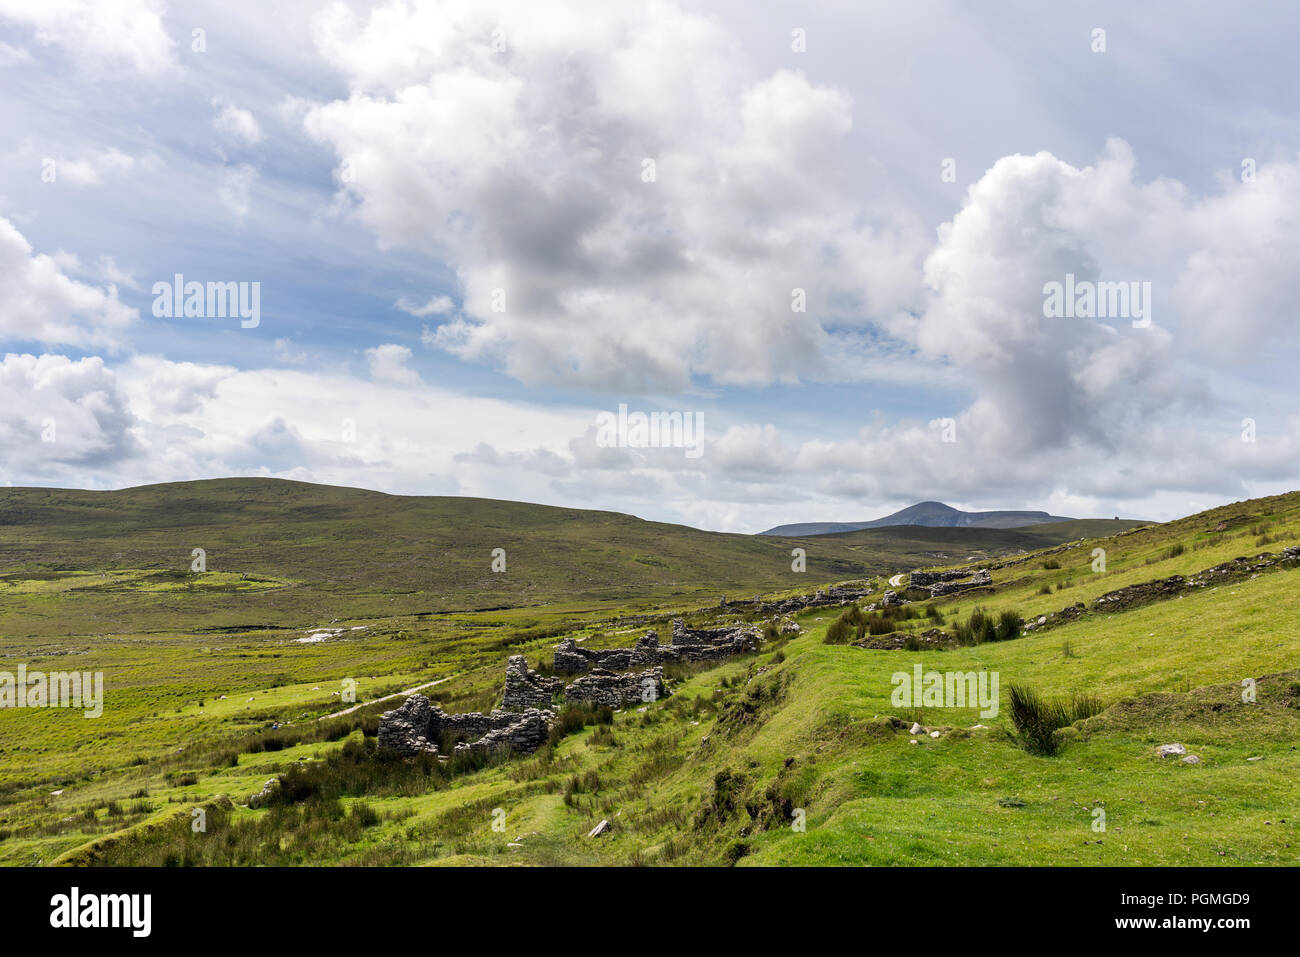 A view of the Abandoned village at Achill Island, County Mayo, Ireland. - Stock Image